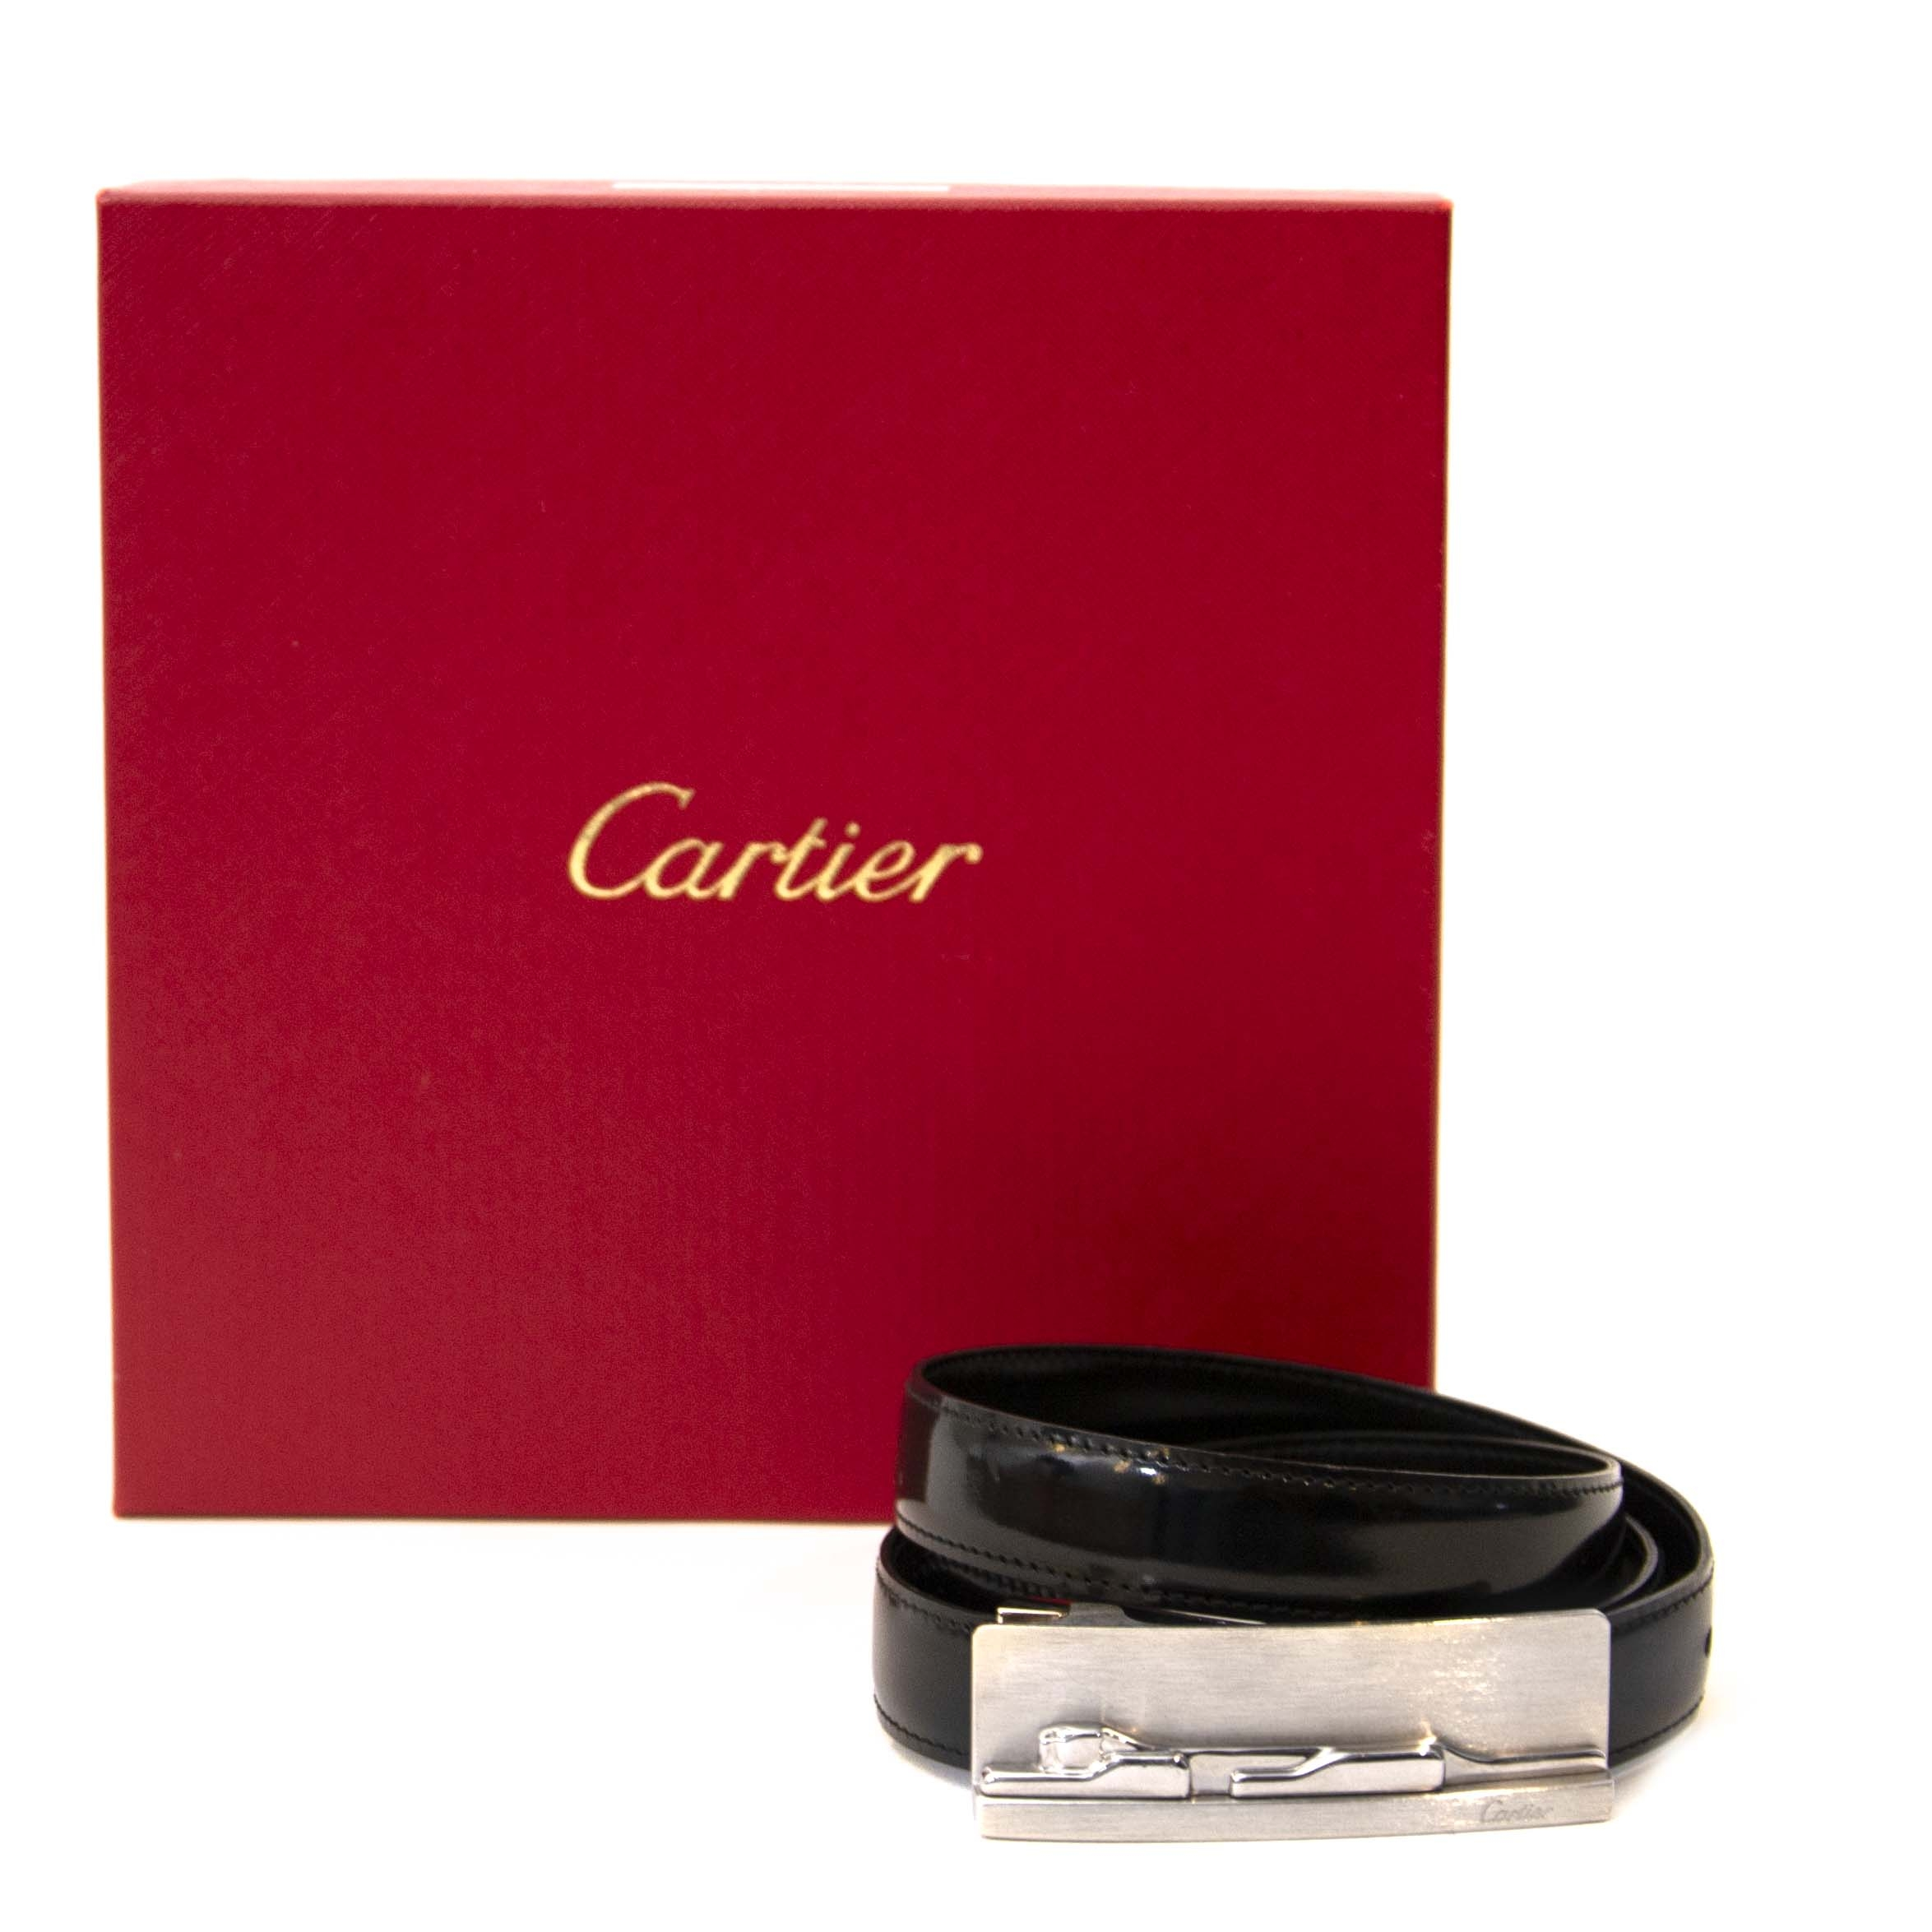 Cartier Black Patent Leather Belt - Size 90. Buy this authentic second hand vintage Céline Black Belt Golden Details at online webshop LabelLOV. Safe and secure shopping. Koop deze authentieke Céline Black Belt Golden Details bij online webshop LabelLOV.